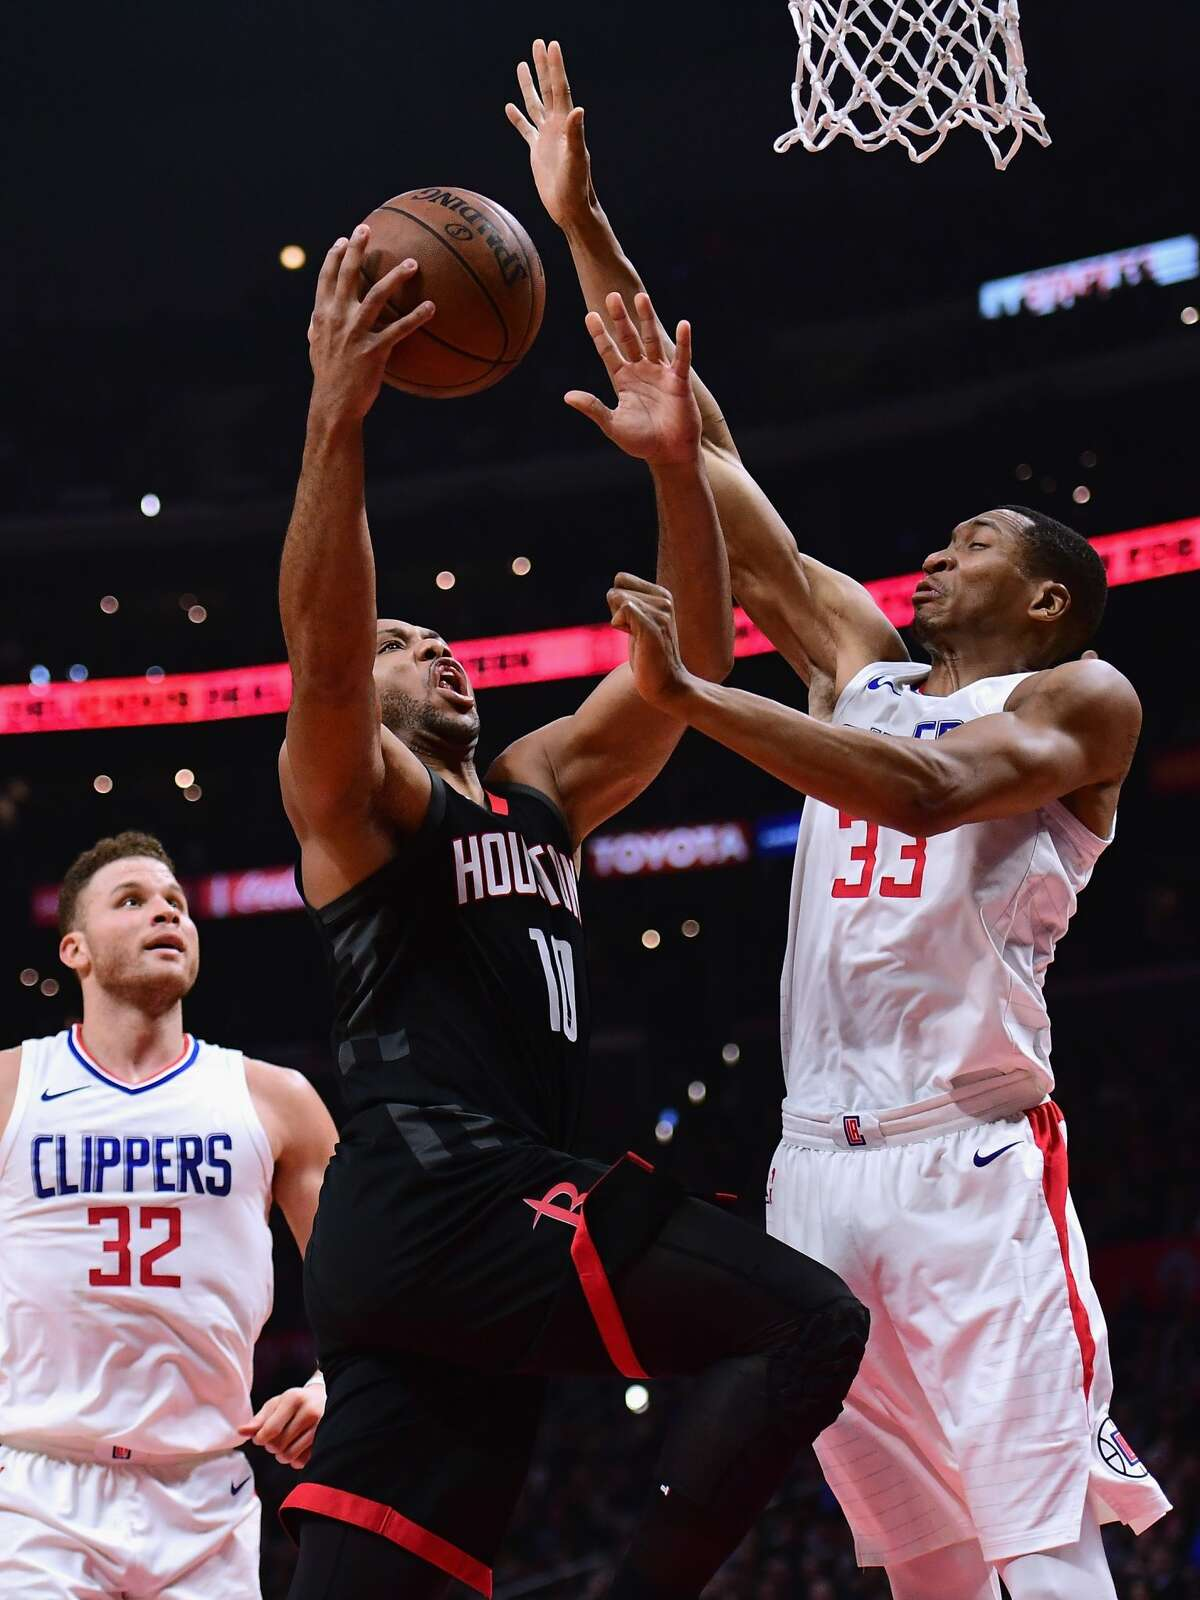 PHOTOS: 8 key moments that sparked Rockets-Clippers confrontation 1. With 3:32 left and the Clippers leading 106-98, Eric Gordon drove to the rim, only to have the Clippers' Wesley Johnson two-hand swat the ball against the backboard. The Rockets screamed for a goaltending, with replays showing the ball did hit the backboard before Johnson reached it.